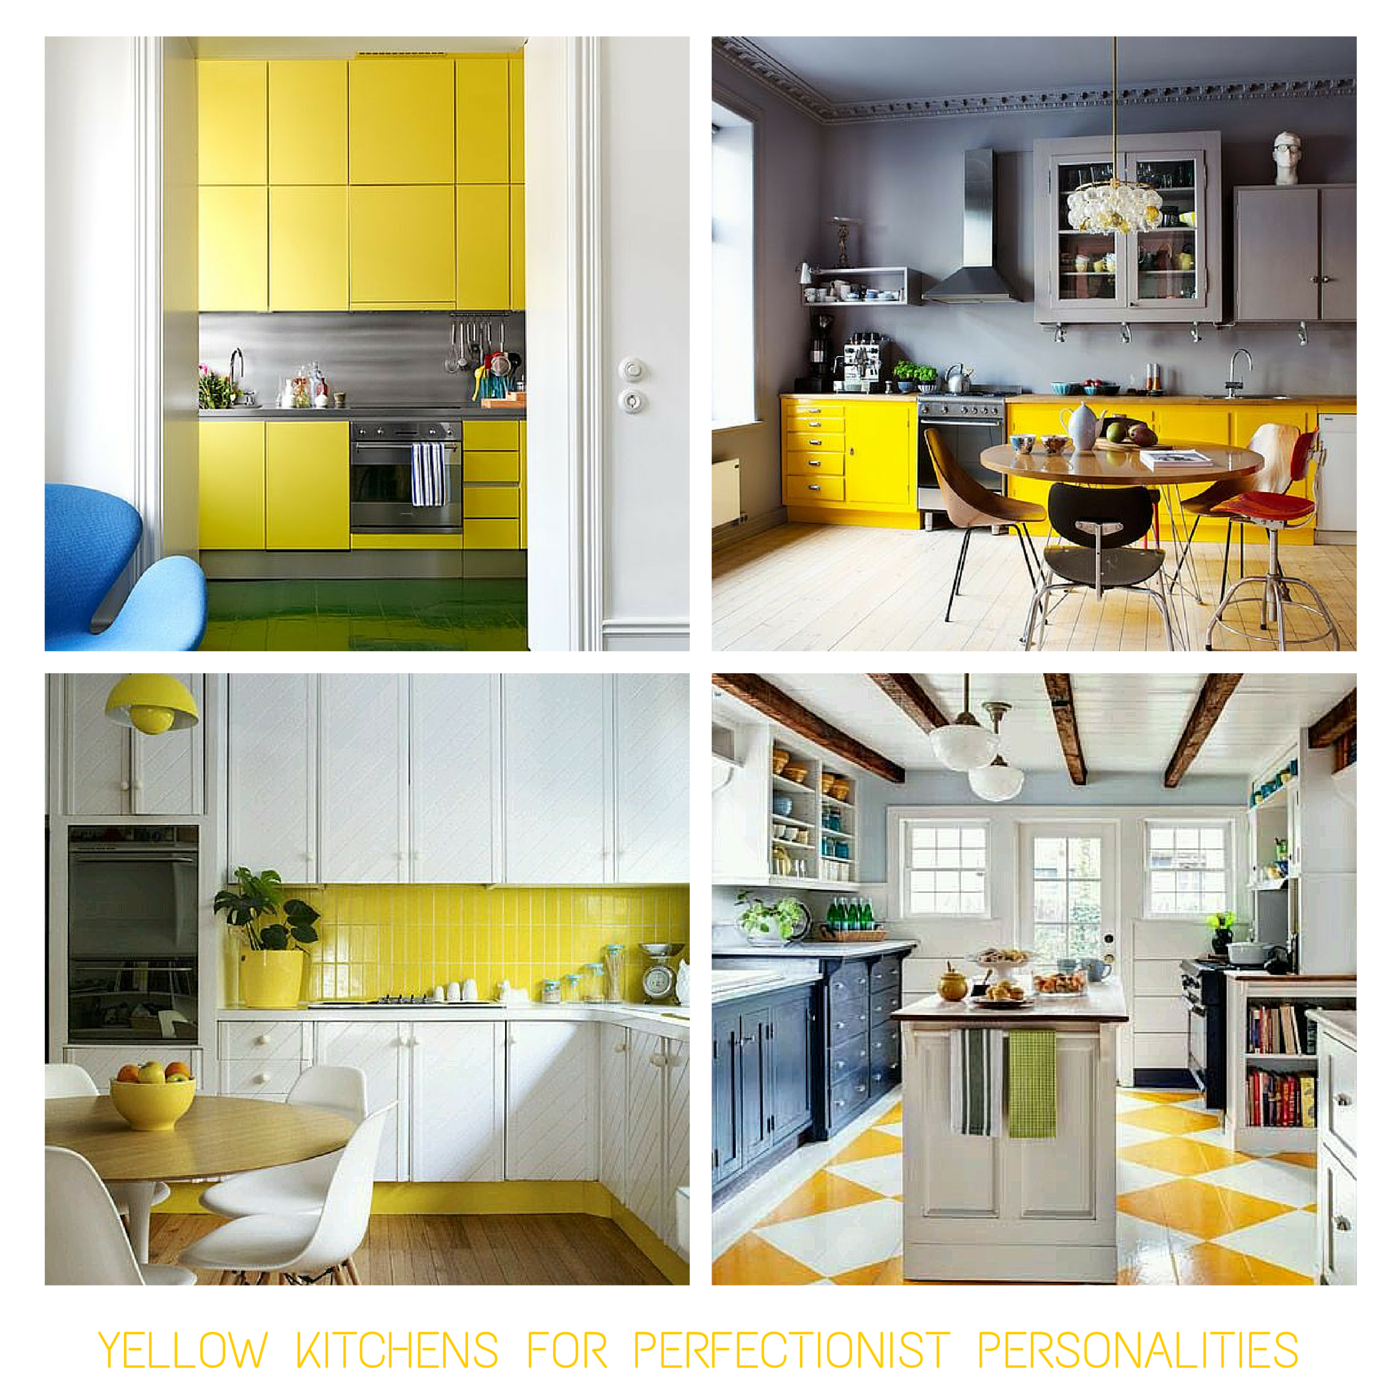 Yellow Kitchens for the 'Sophisticated Perfectionist'' Personality - read the blog post for other personality matches